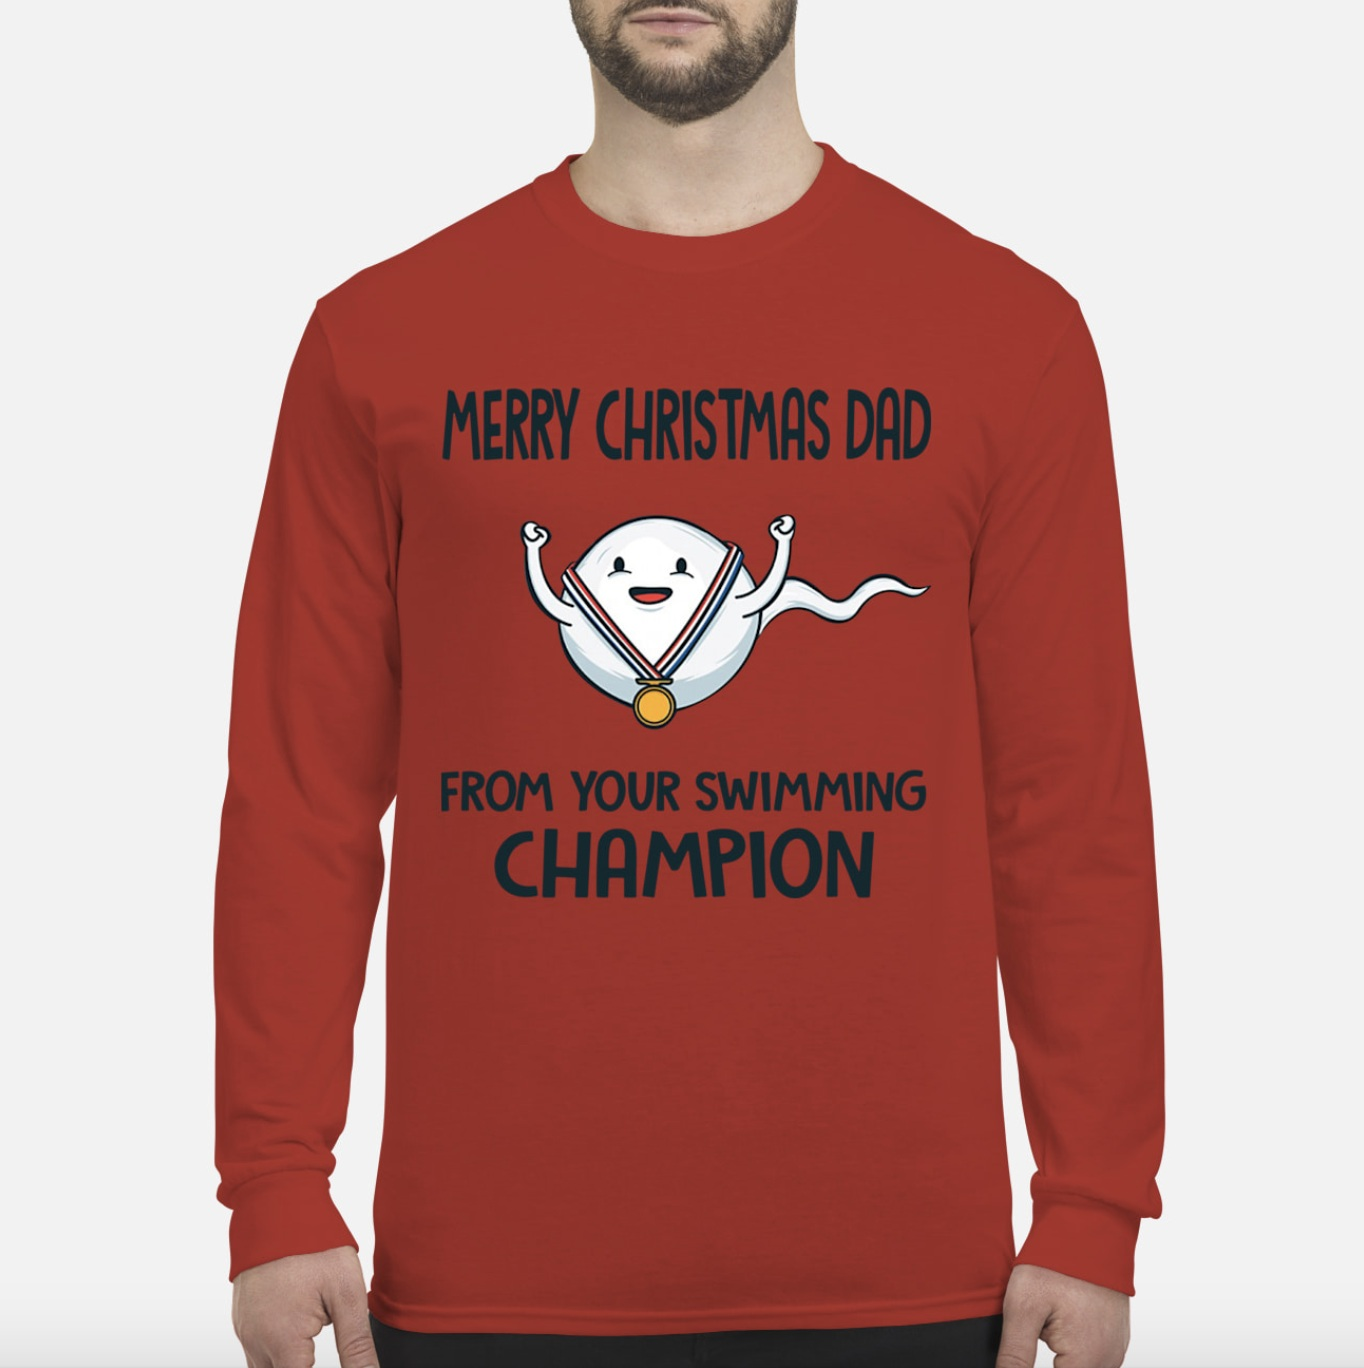 Sperm Merry Christmas dad from your swimming champion long sleeve